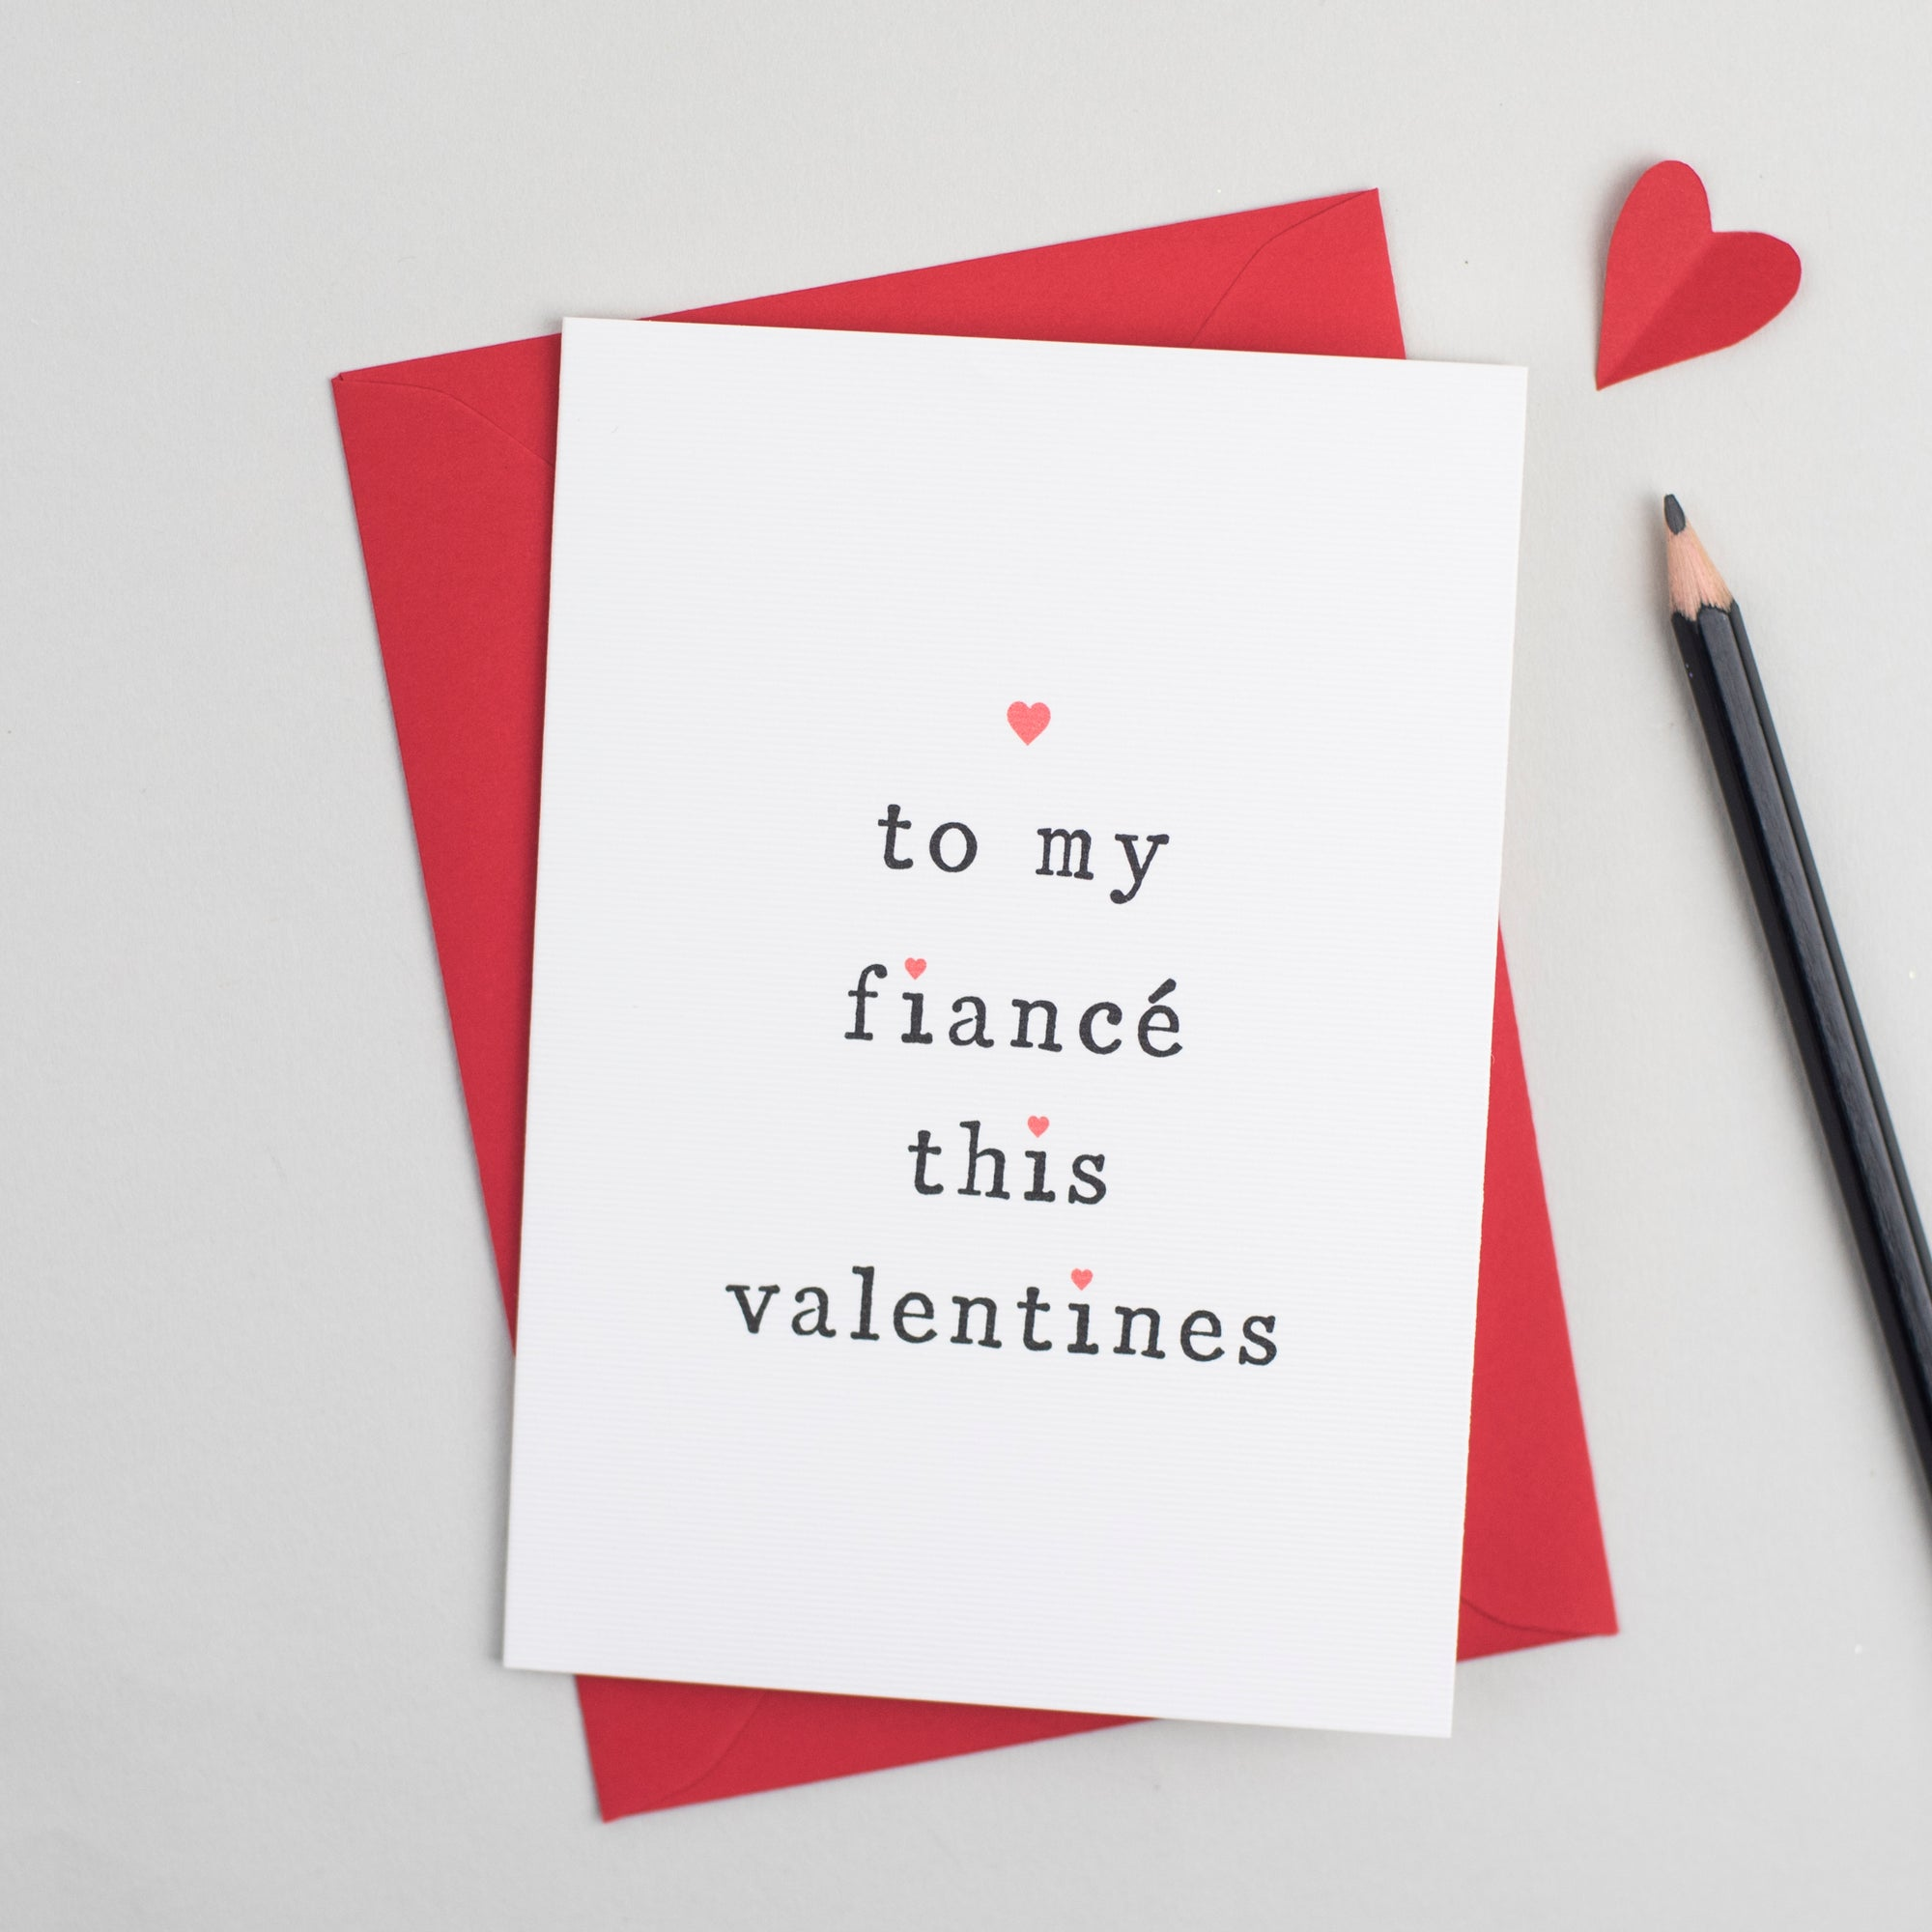 'To My Fiancé or Fiancée' Valentine's Day Card Card - The Two Wagtails